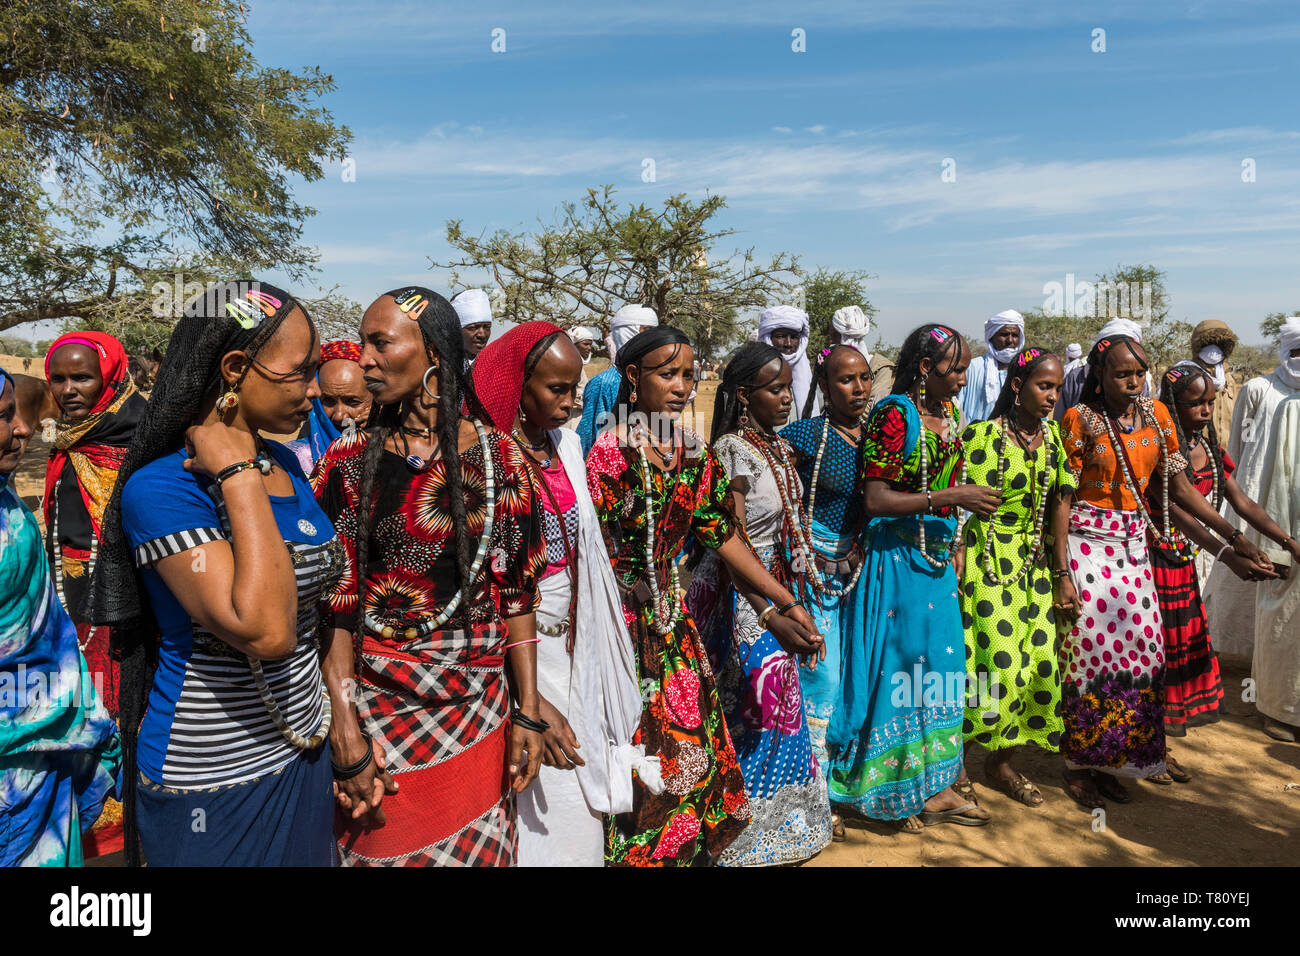 Colourful dressed women at a tribal festival, Sahel, Chad, Africa - Stock Image